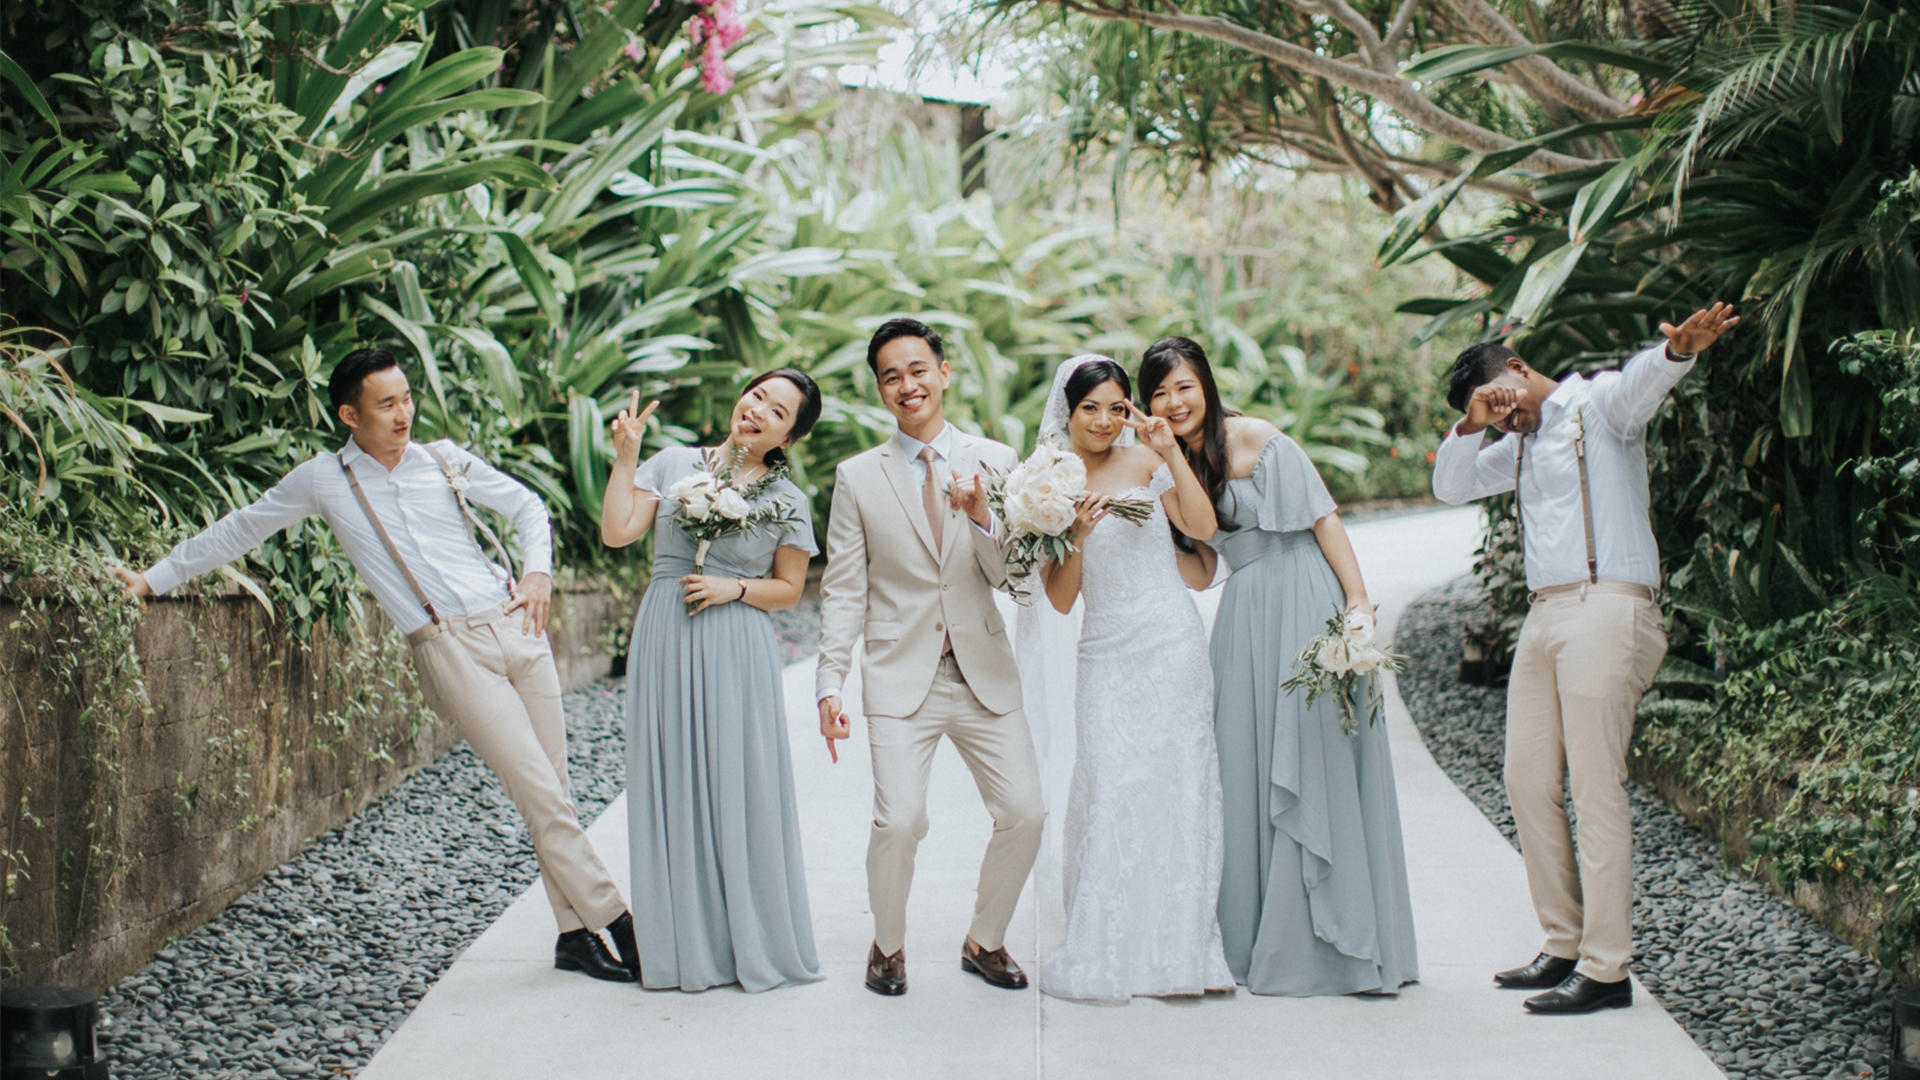 Kevin + Neysa | Bali, Indonesia | The Edge